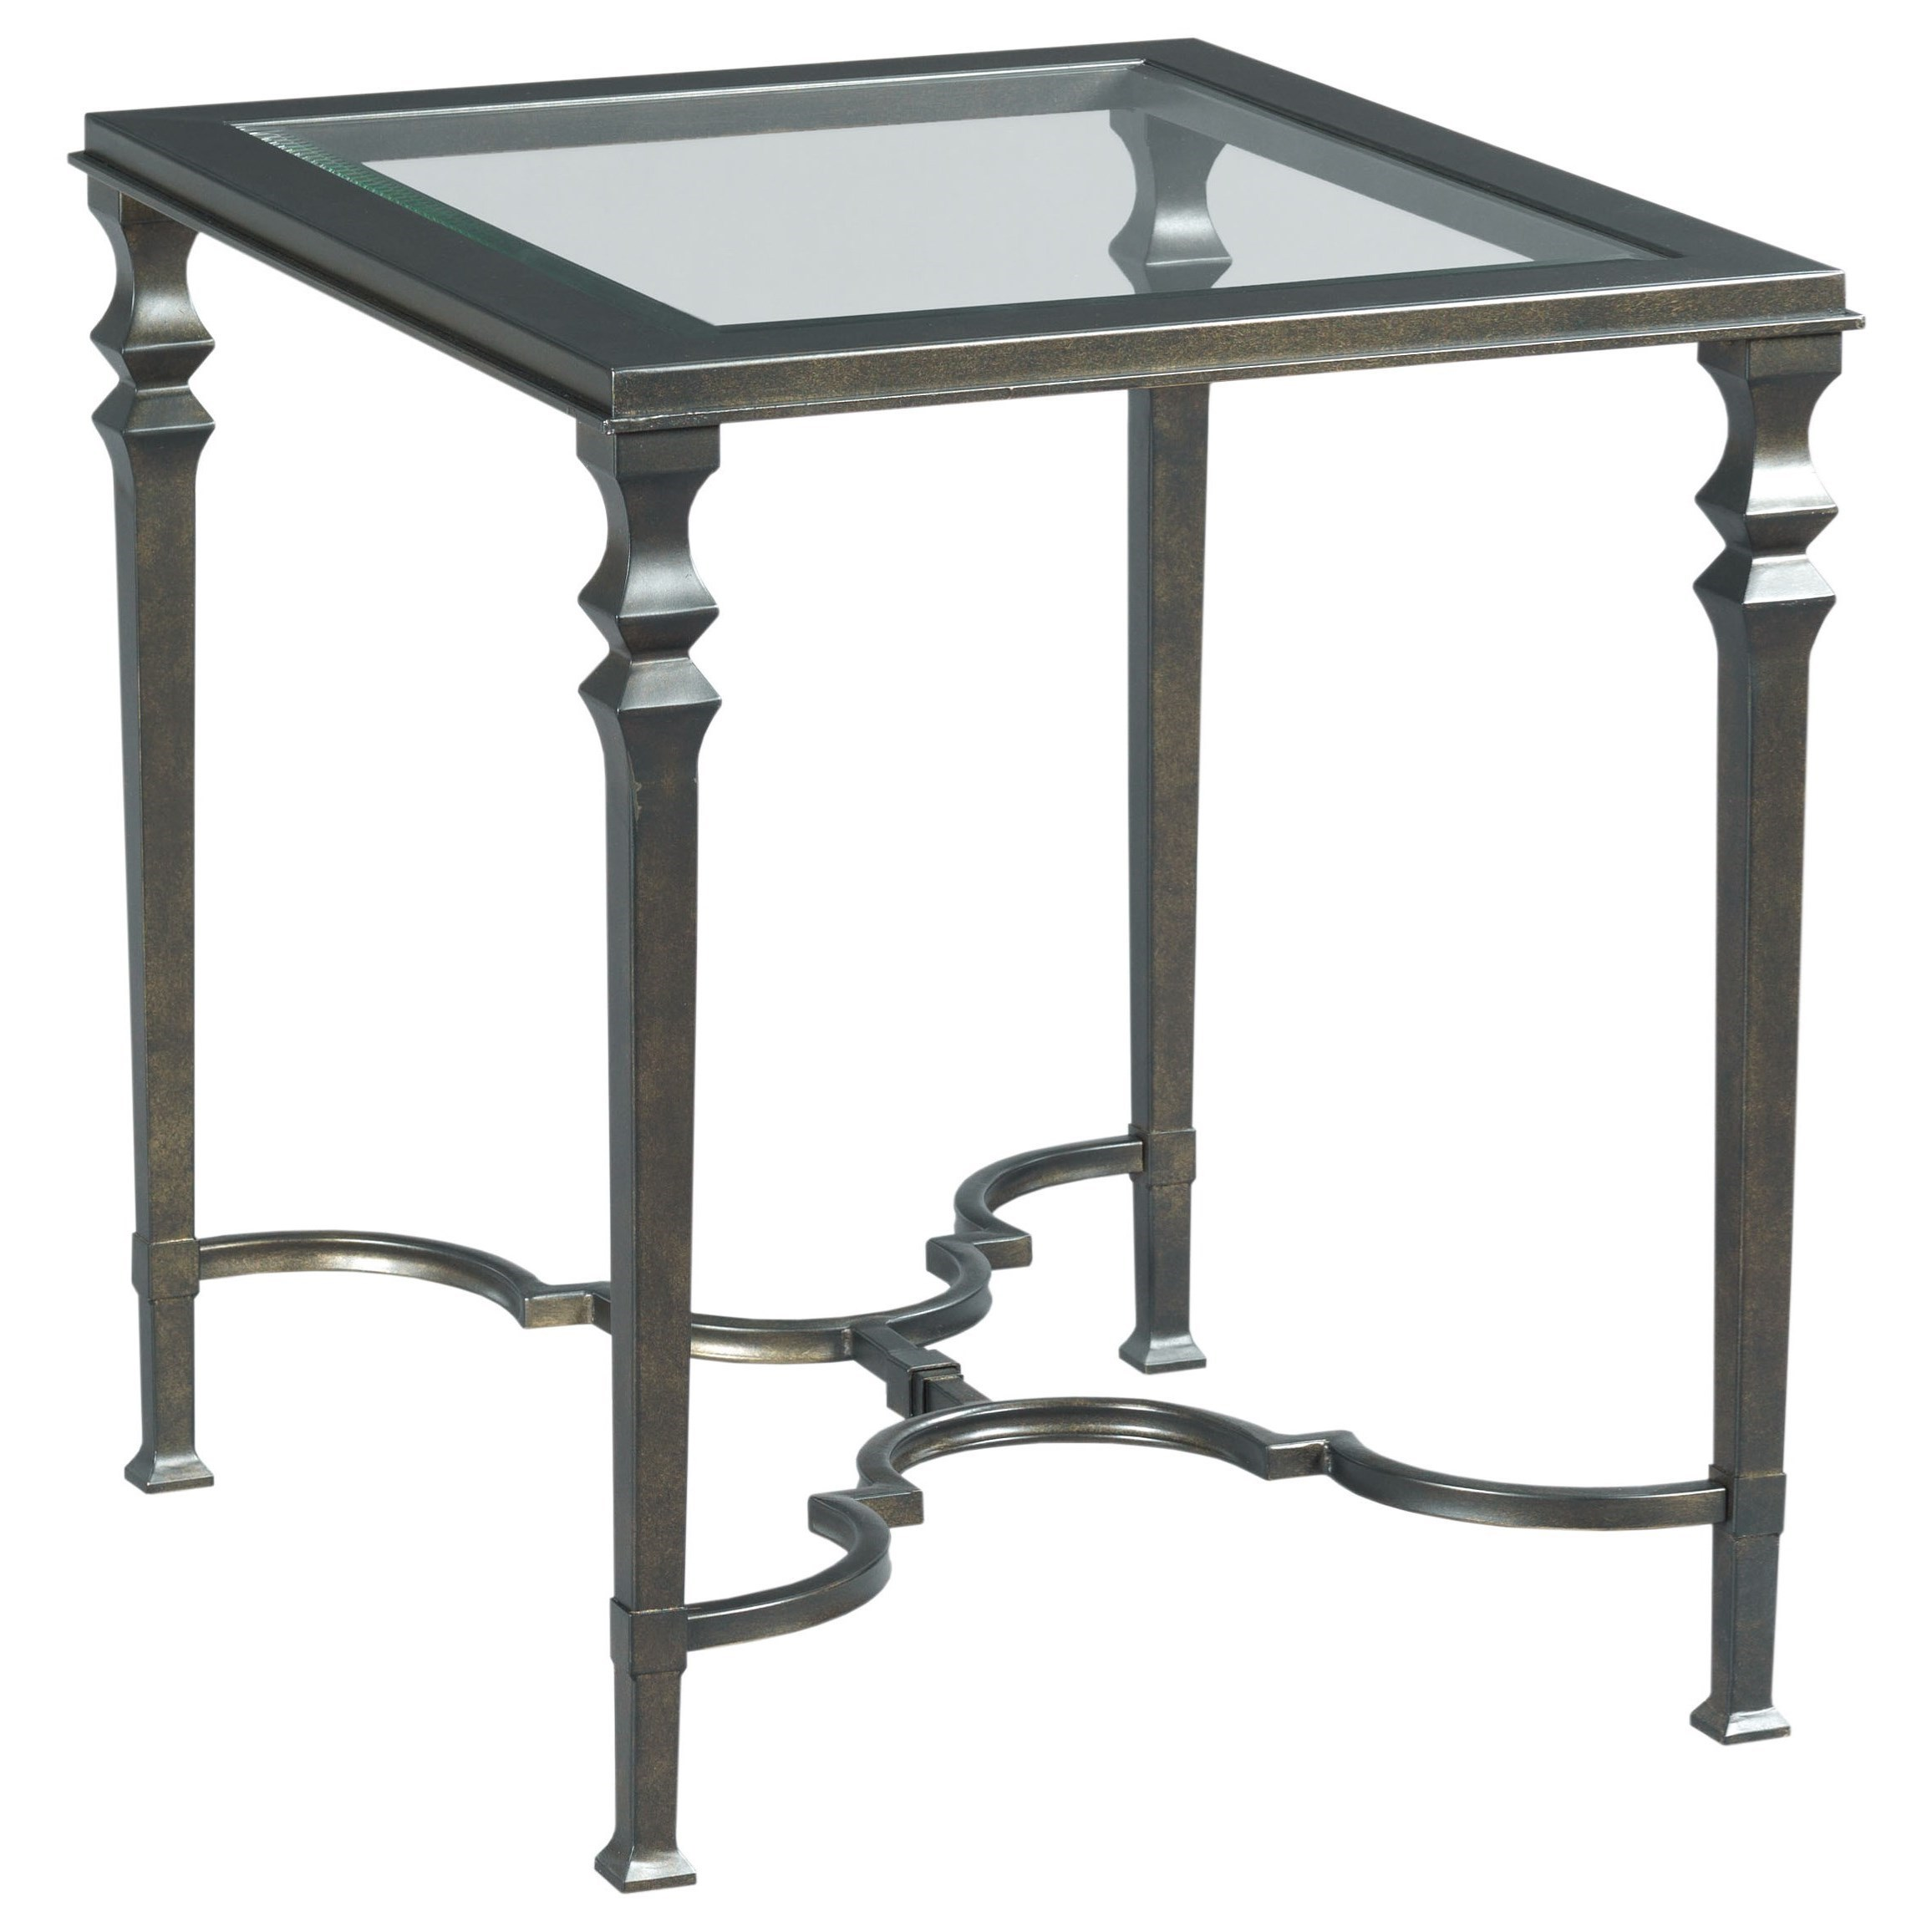 Metal Glass End Tables Hammary Paragon 840 915 Metal Rectangular End Table With Glass Top